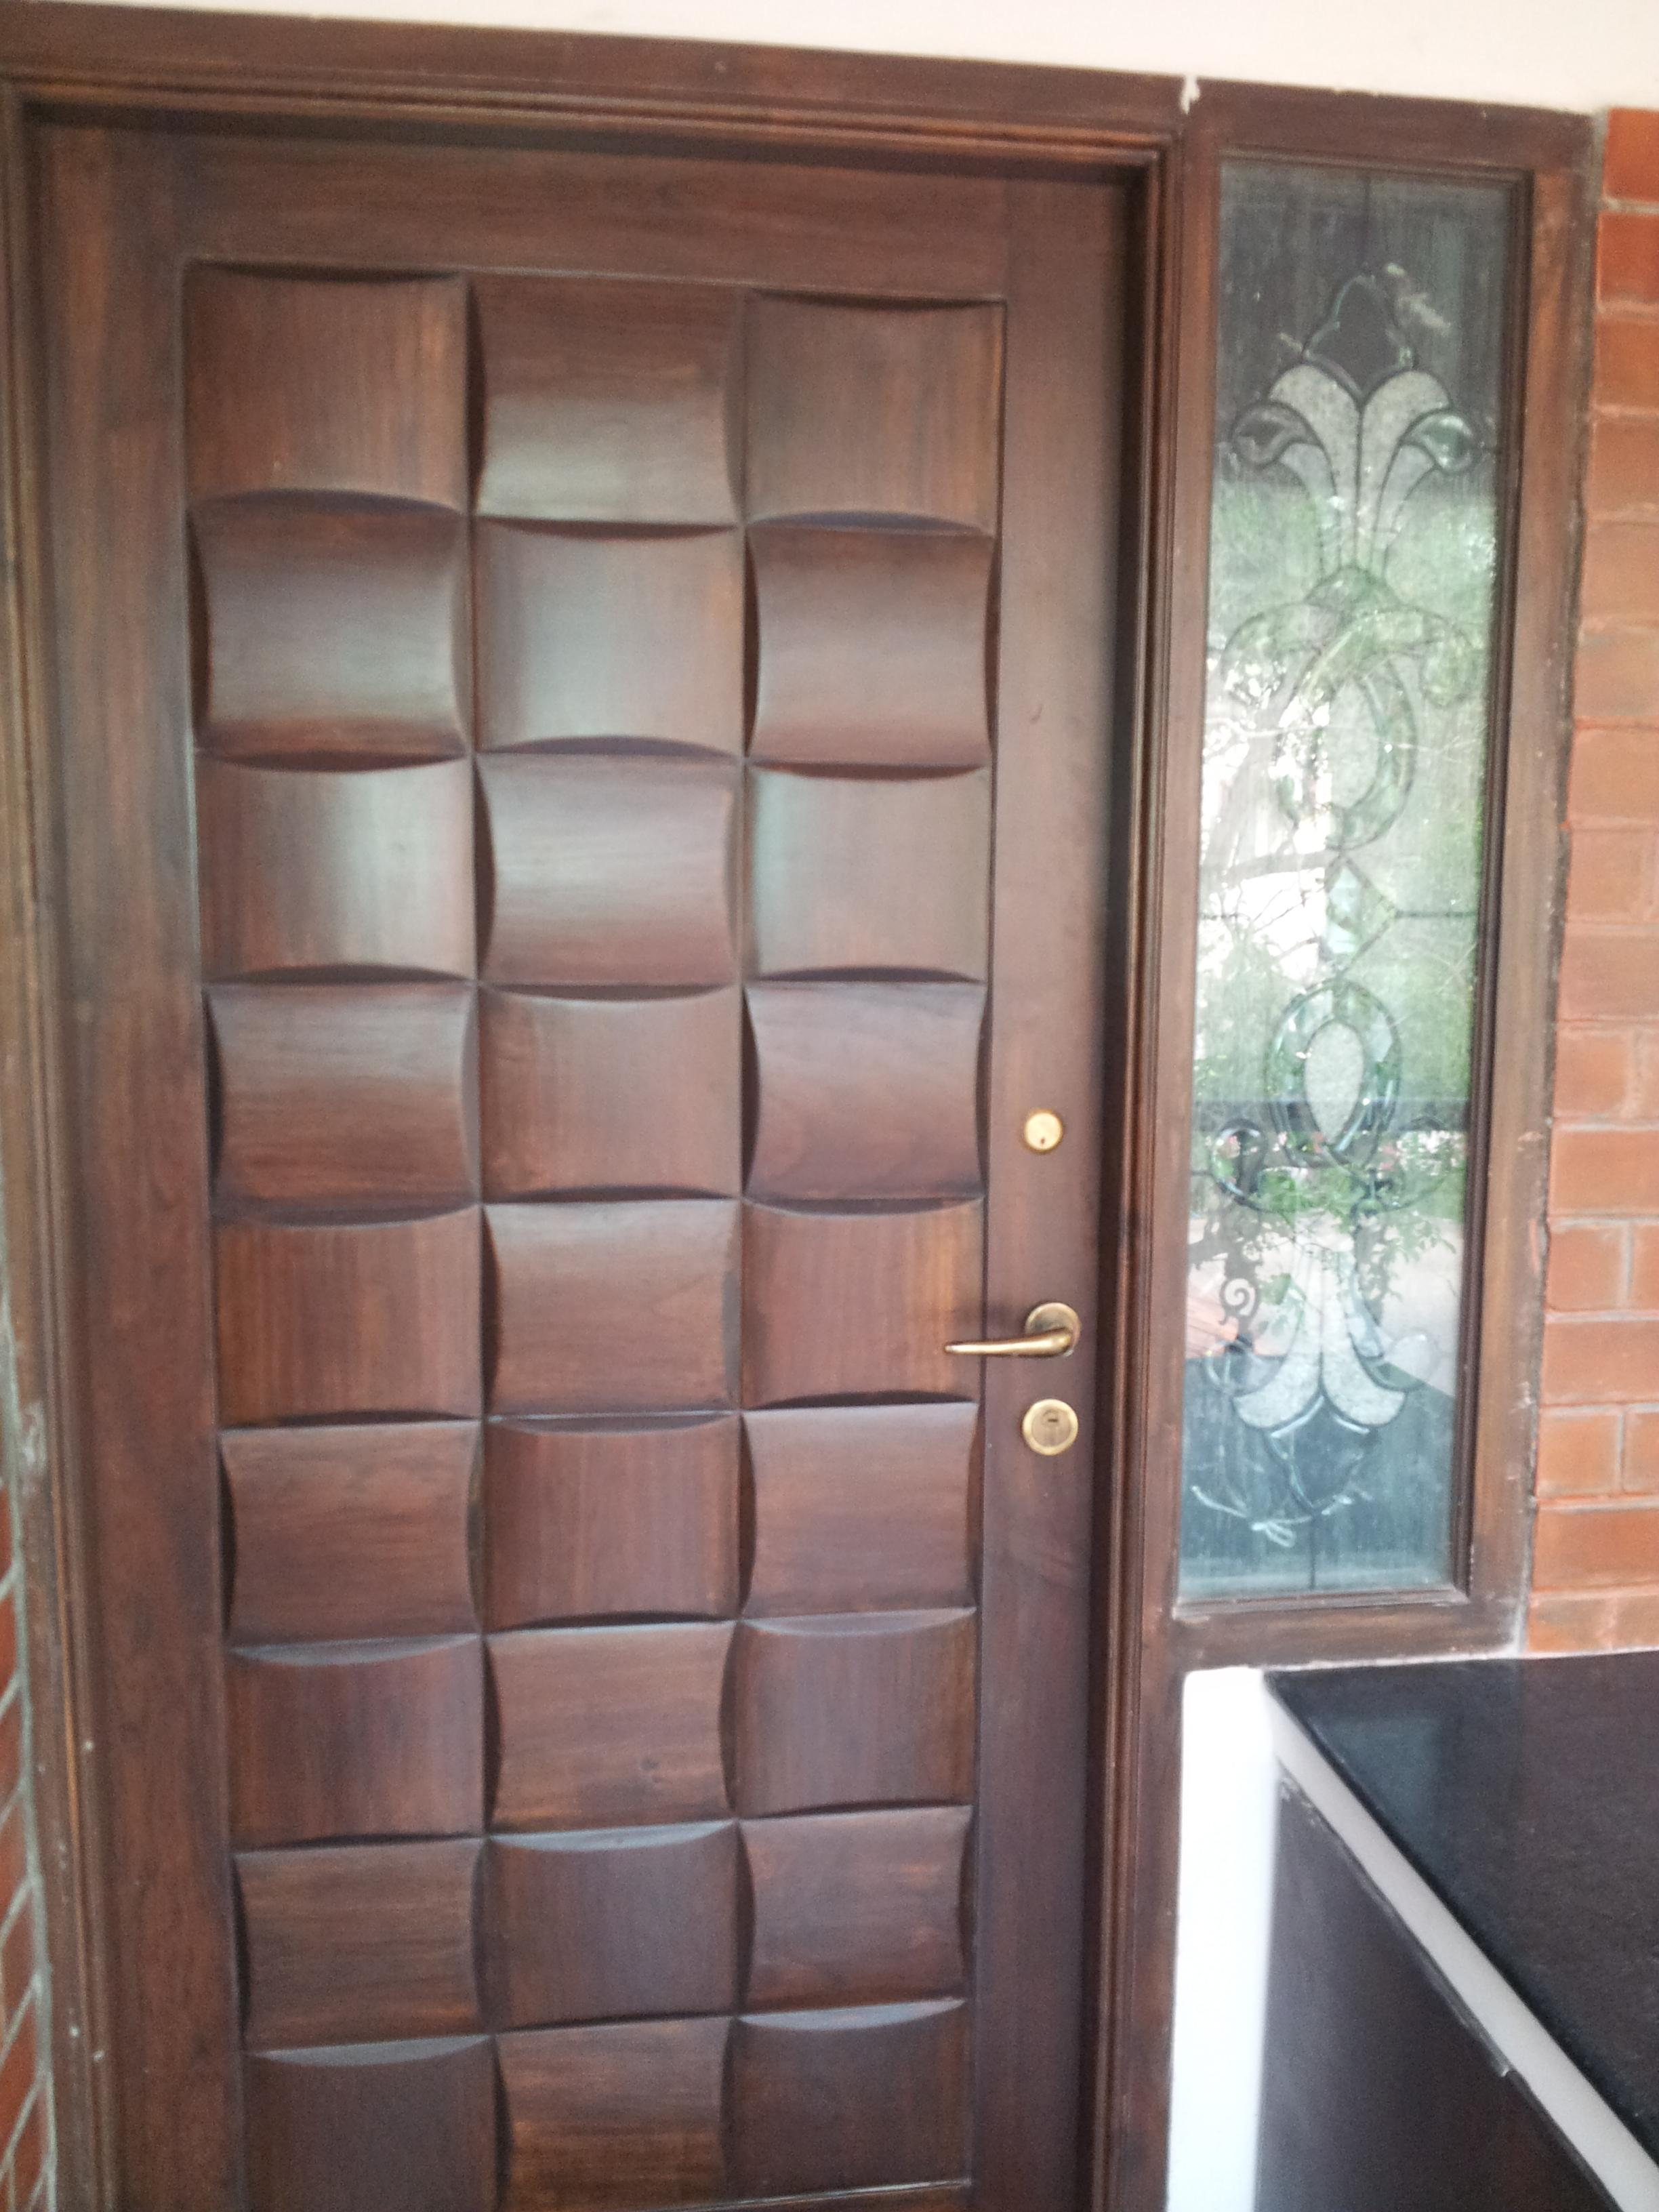 Main door design in wood very popular in 2013 gharexpert for Main door design of wood